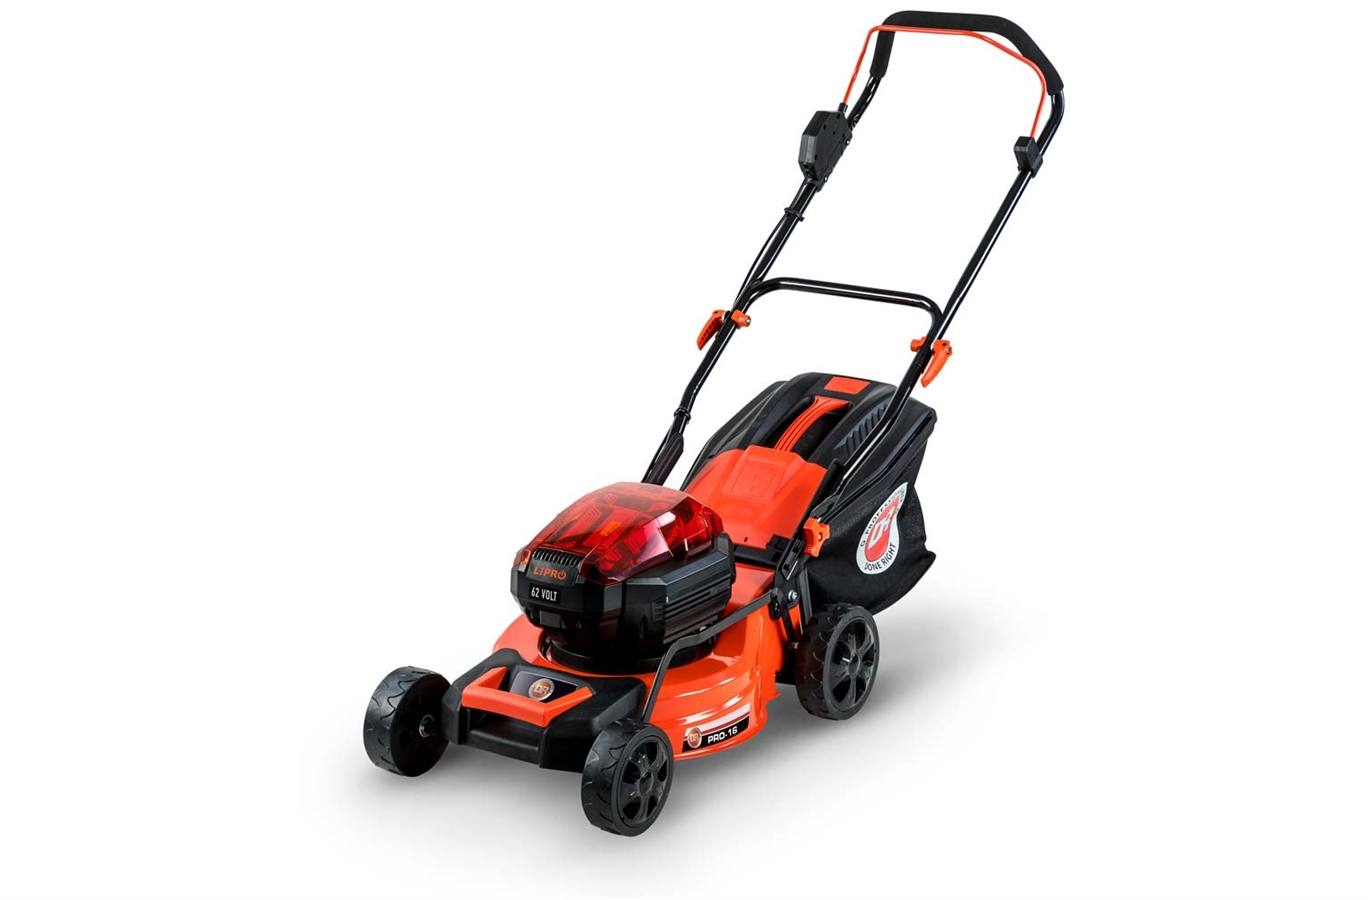 42412 DR 62V Battery-Powered Lawn Mower w/2 Batteries